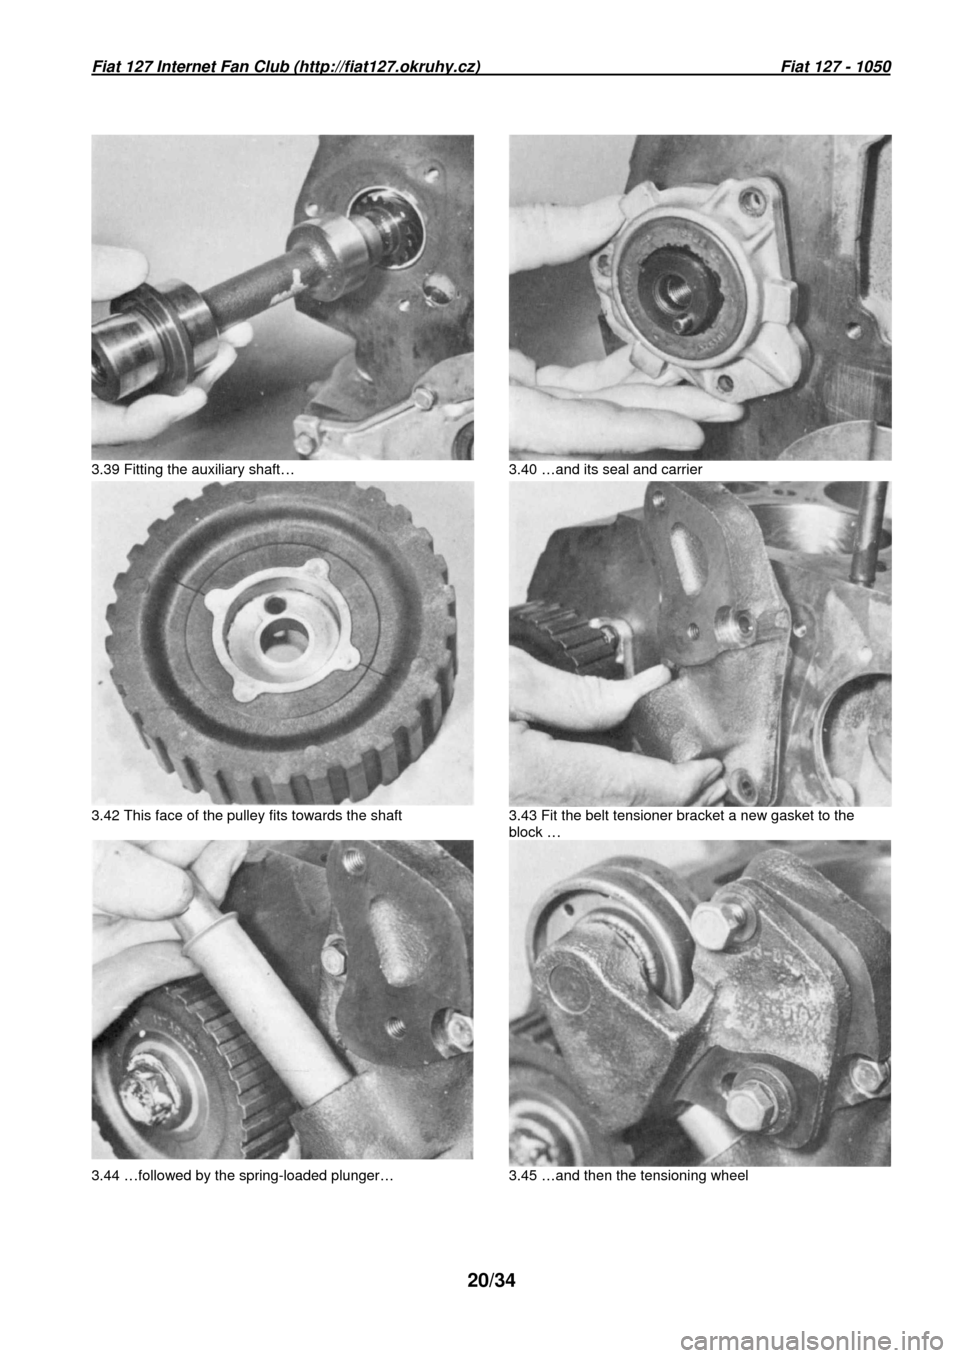 FIAT 127 1977 1.G User Guide Fiat 127 Internet Fan Club (http://fiat127.okruhy.cz)                                                                   Fiat 127 - 1050  20/34         3.39 Fitting the auxiliary shaft…  3.40 …and